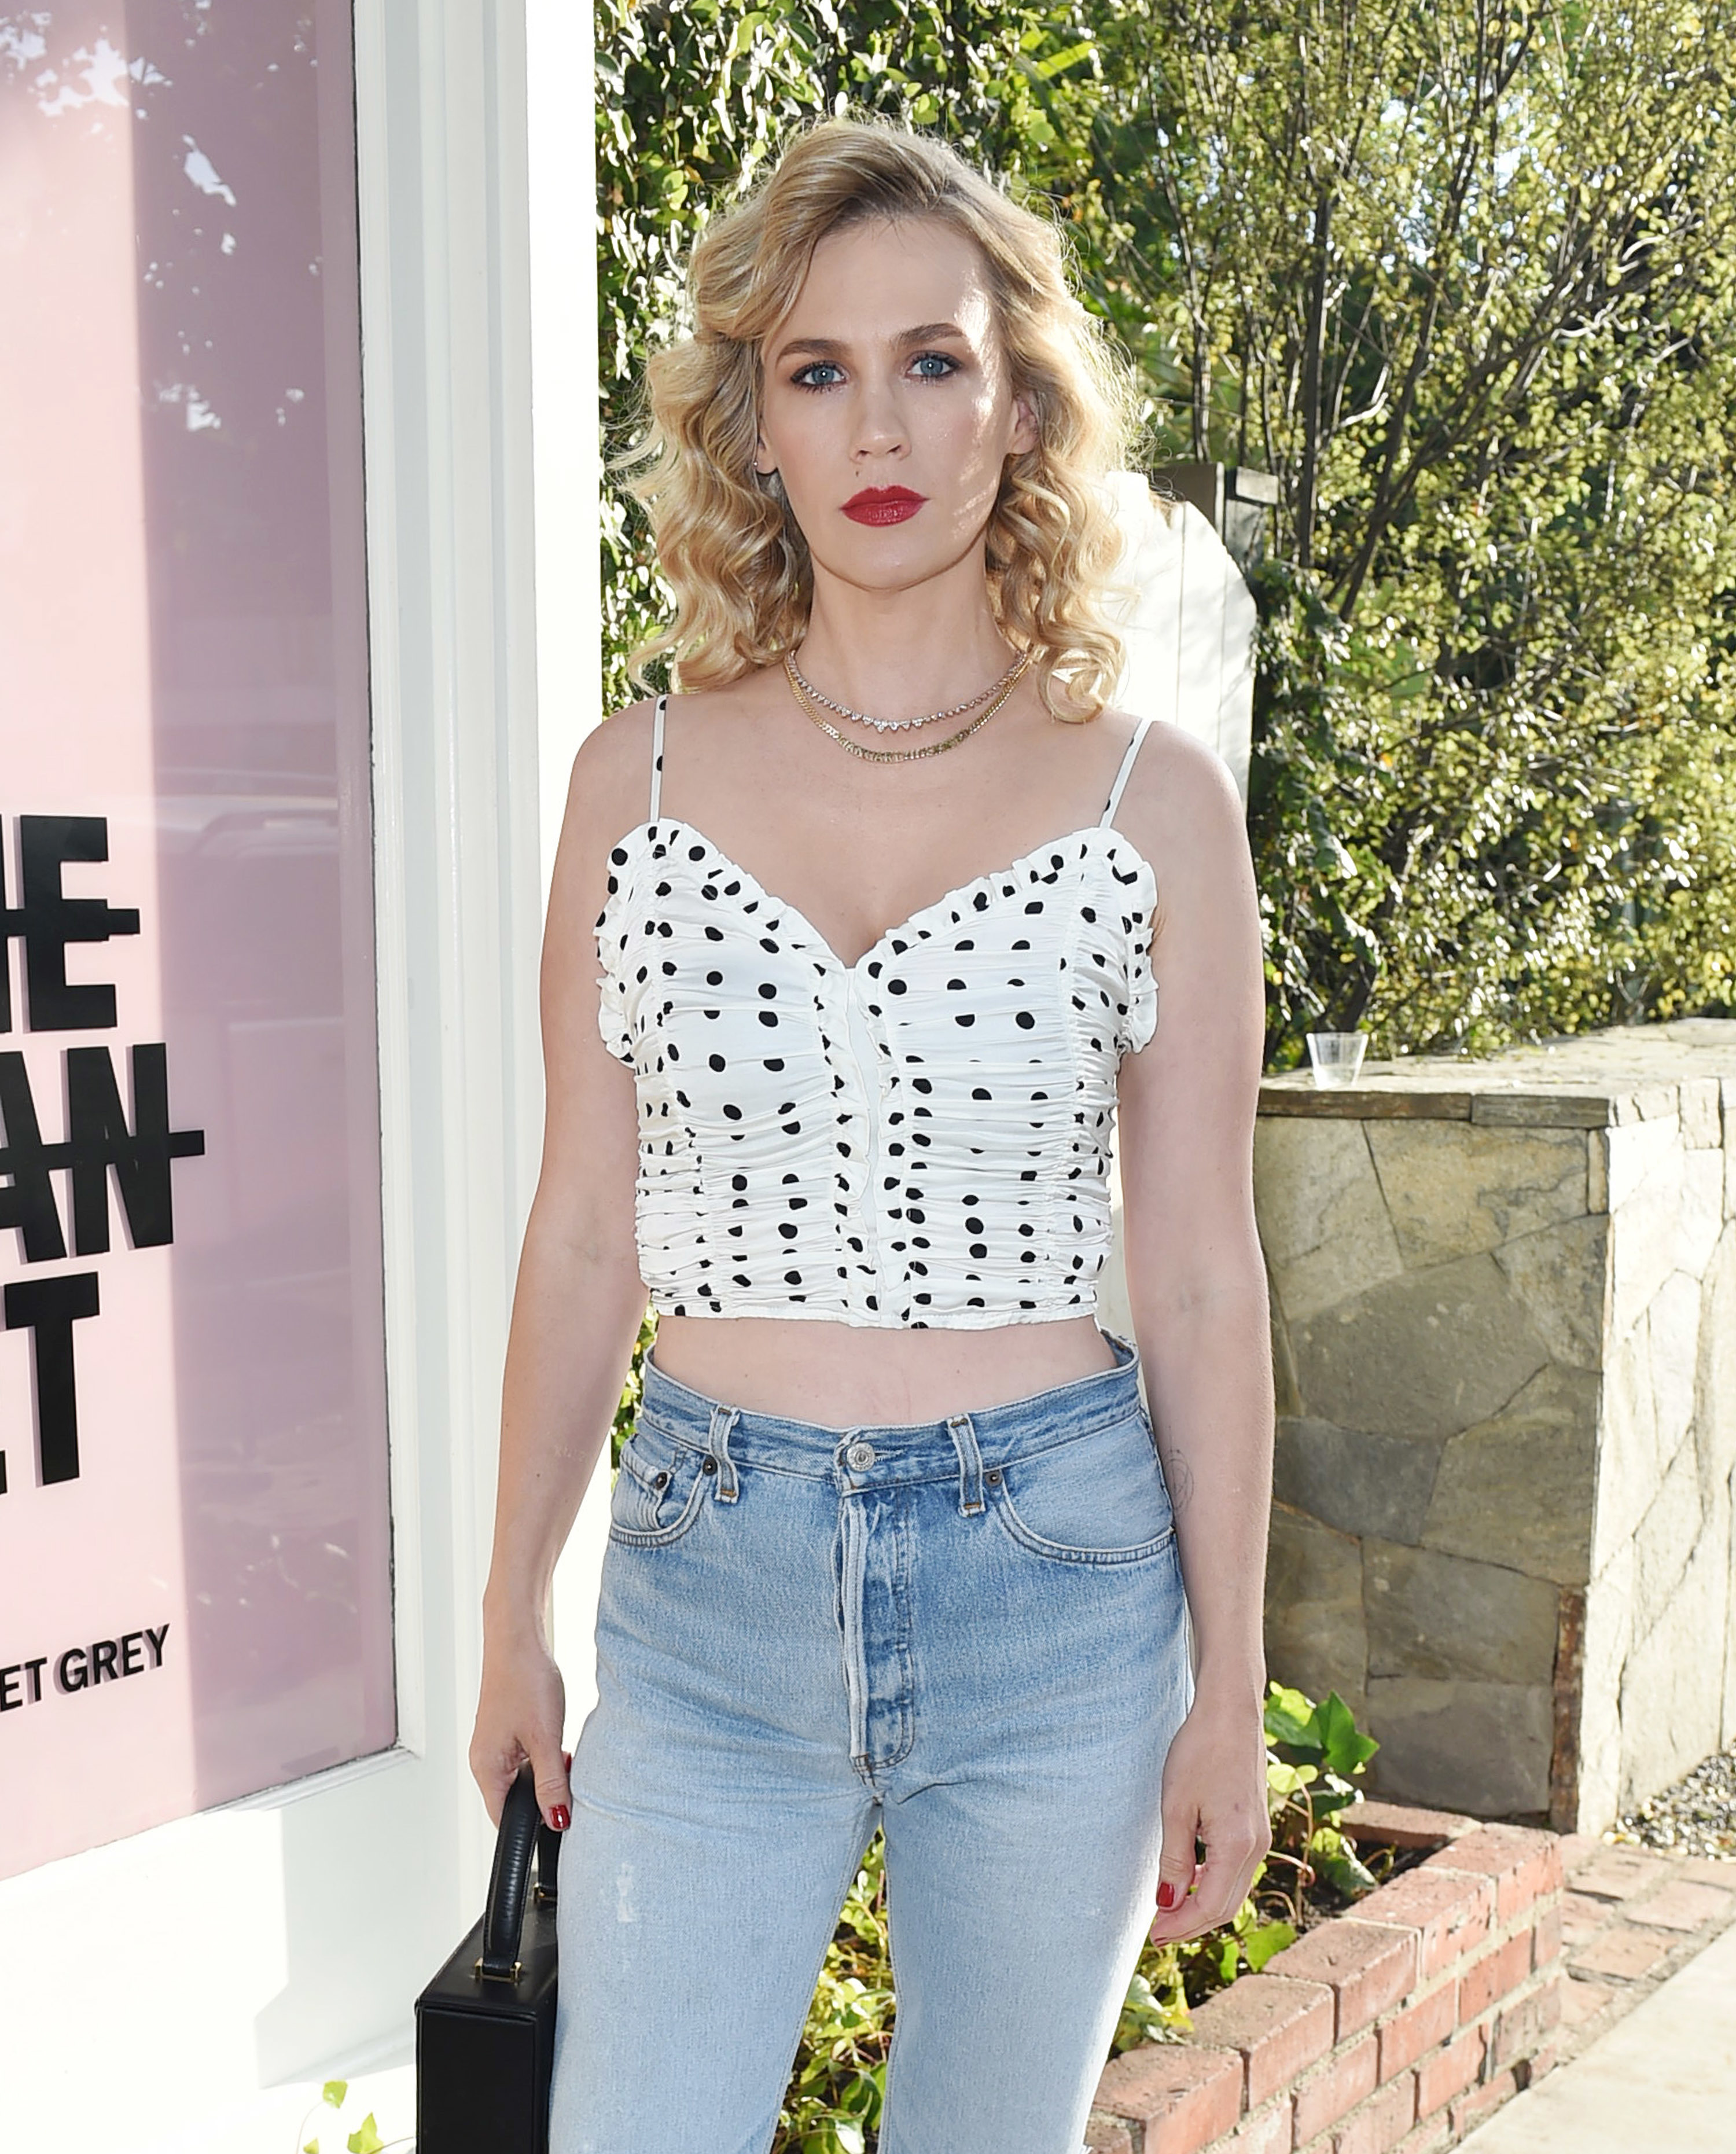 January Jones attends the Violet Grey event in Los Angeles on July 11, 2018.